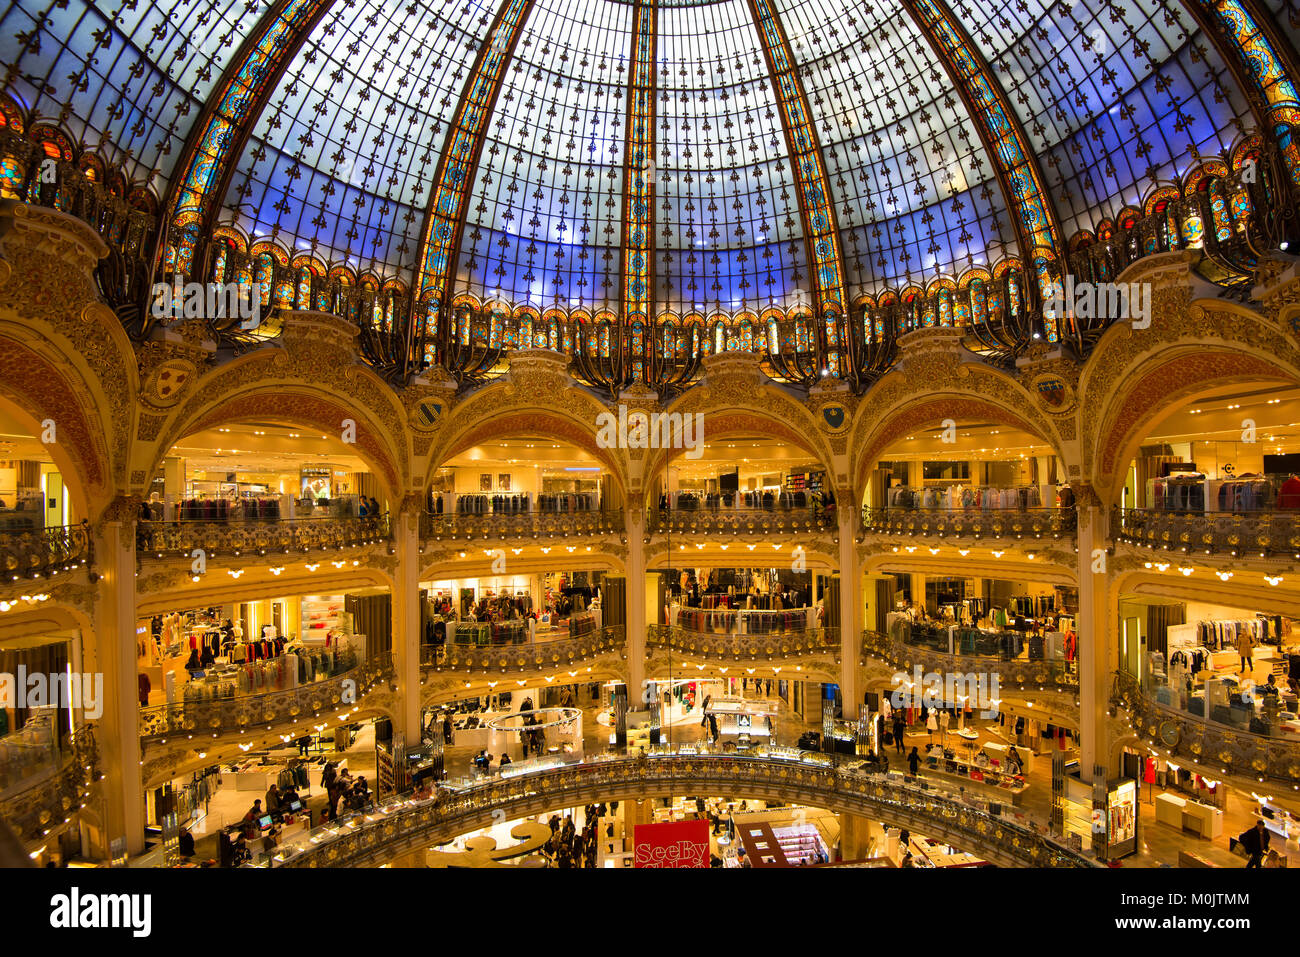 dome galeries lafayette shopping mall paris france stock photo